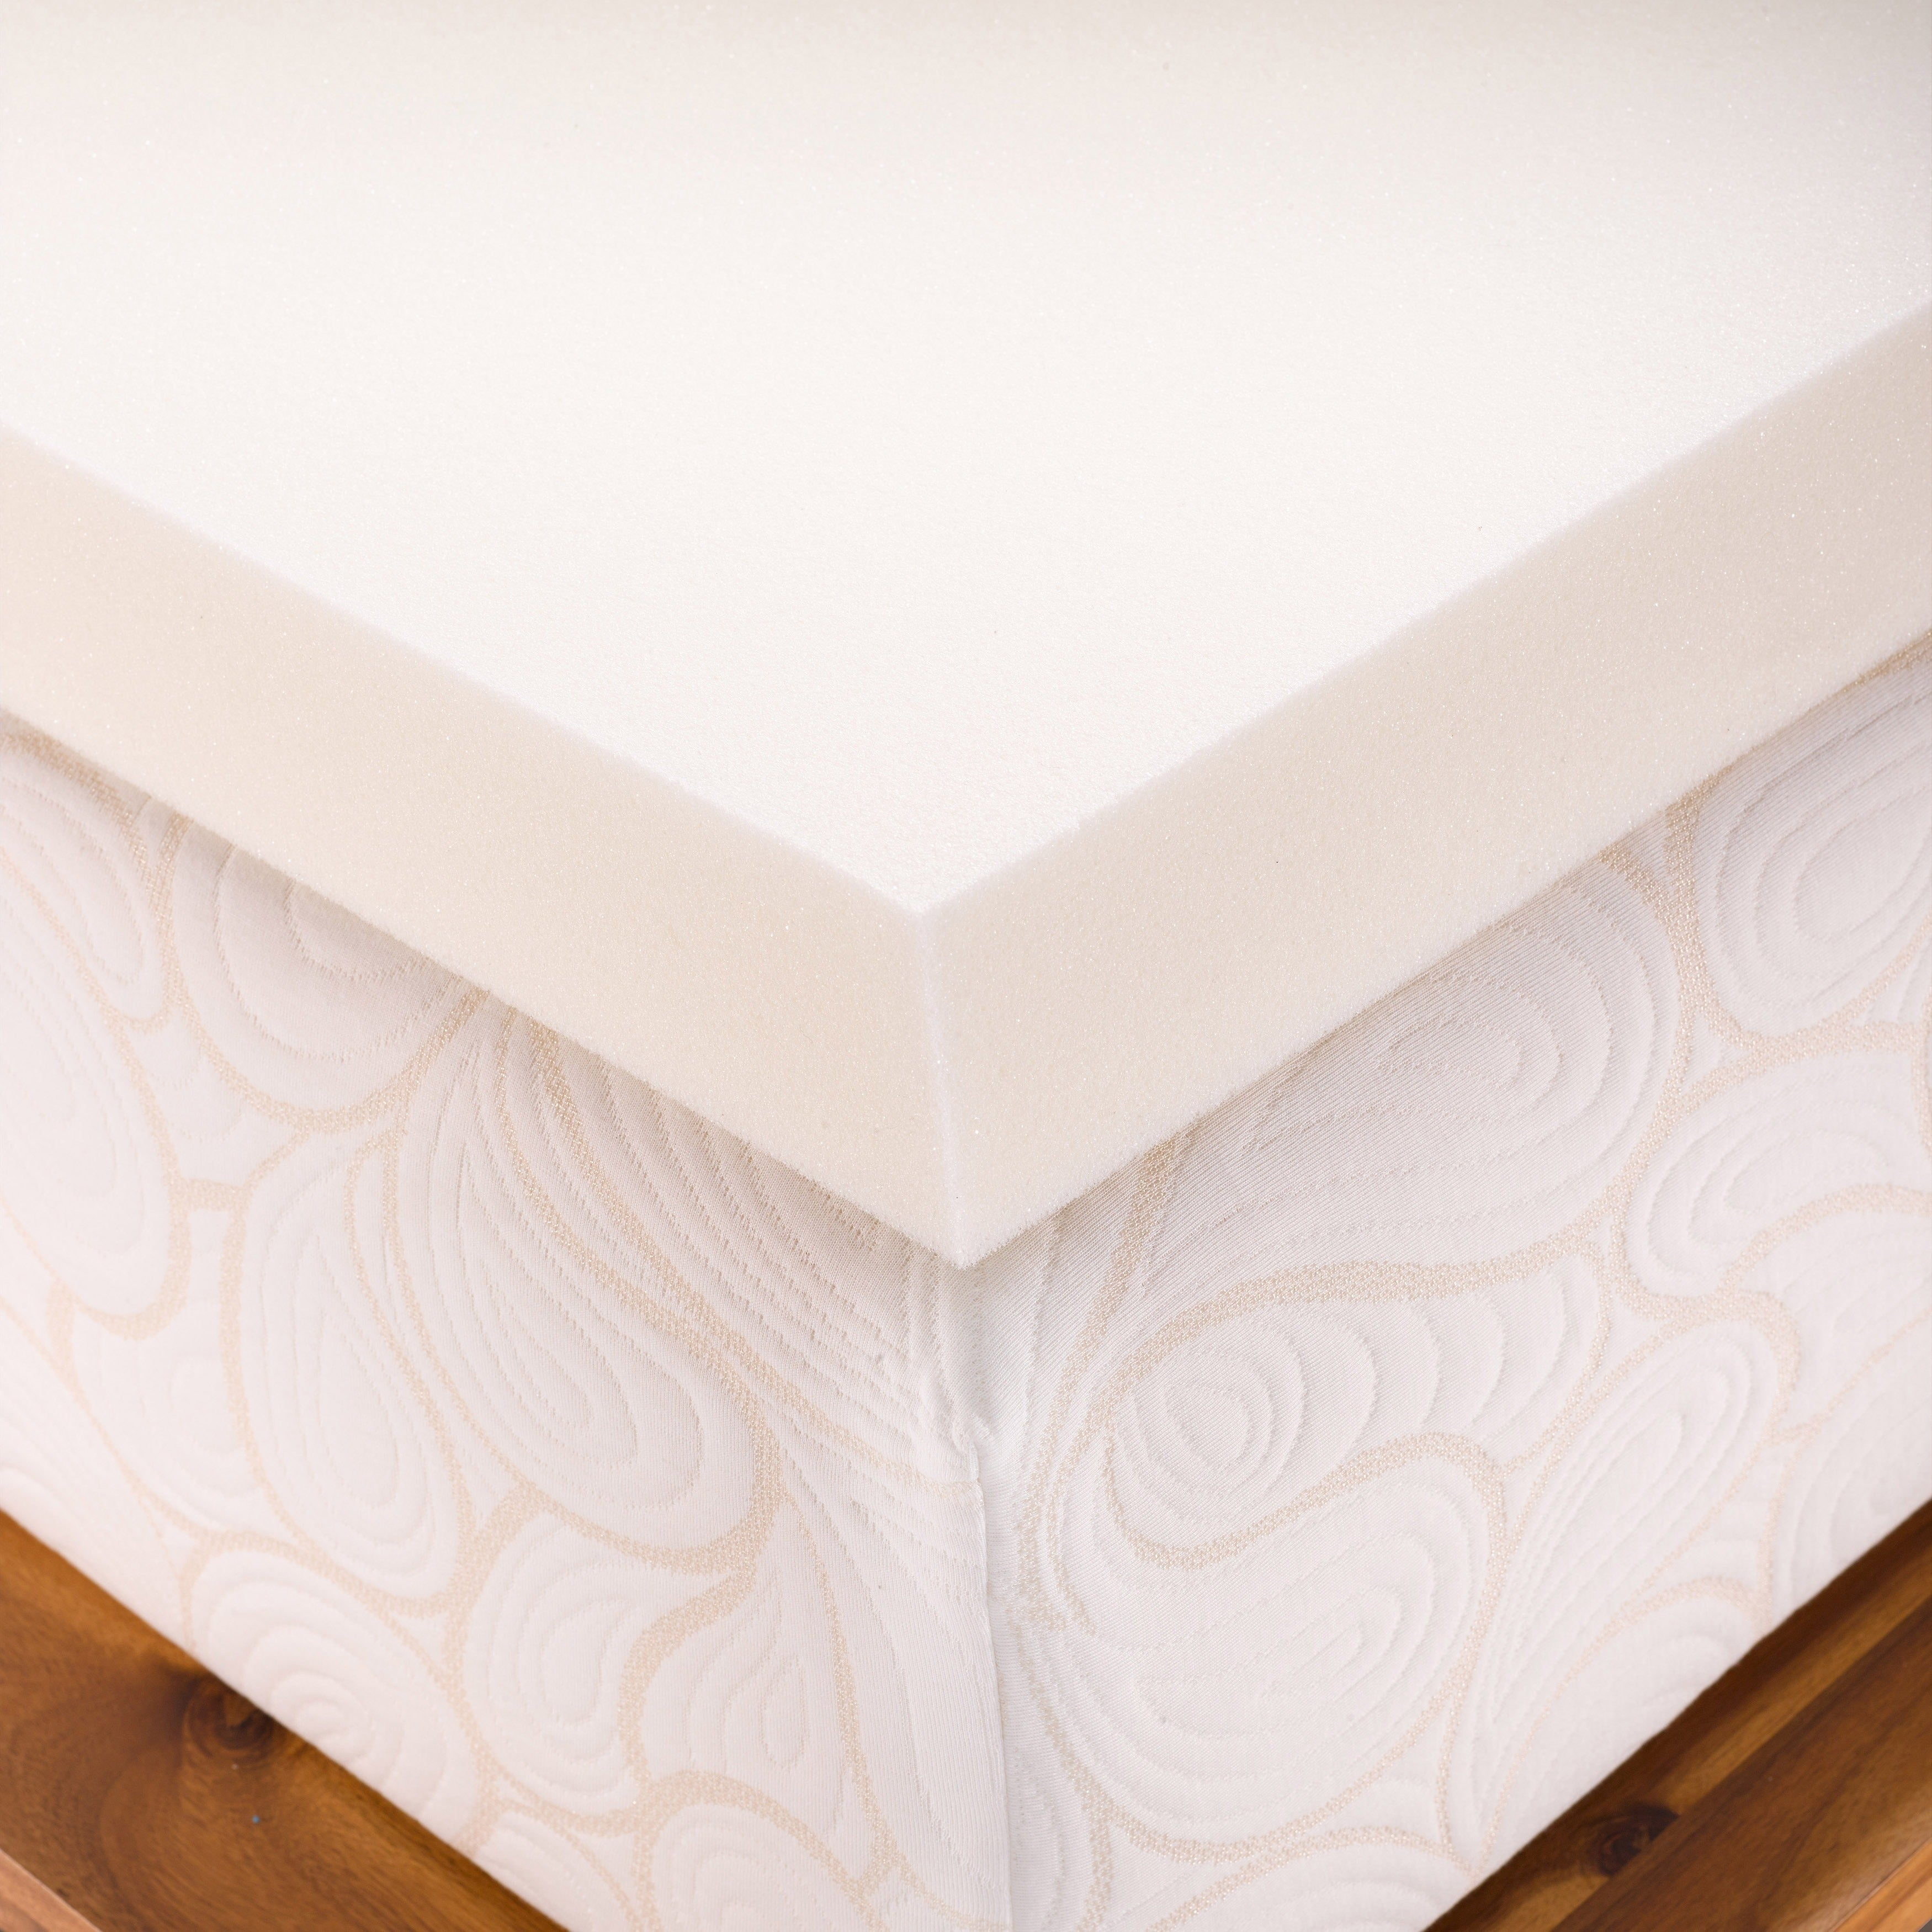 kohls tempur bed size mattresses memory pad walmart inch beyond and bath foam cooling camping mattress pedic toppers target full amazon topper reviews of